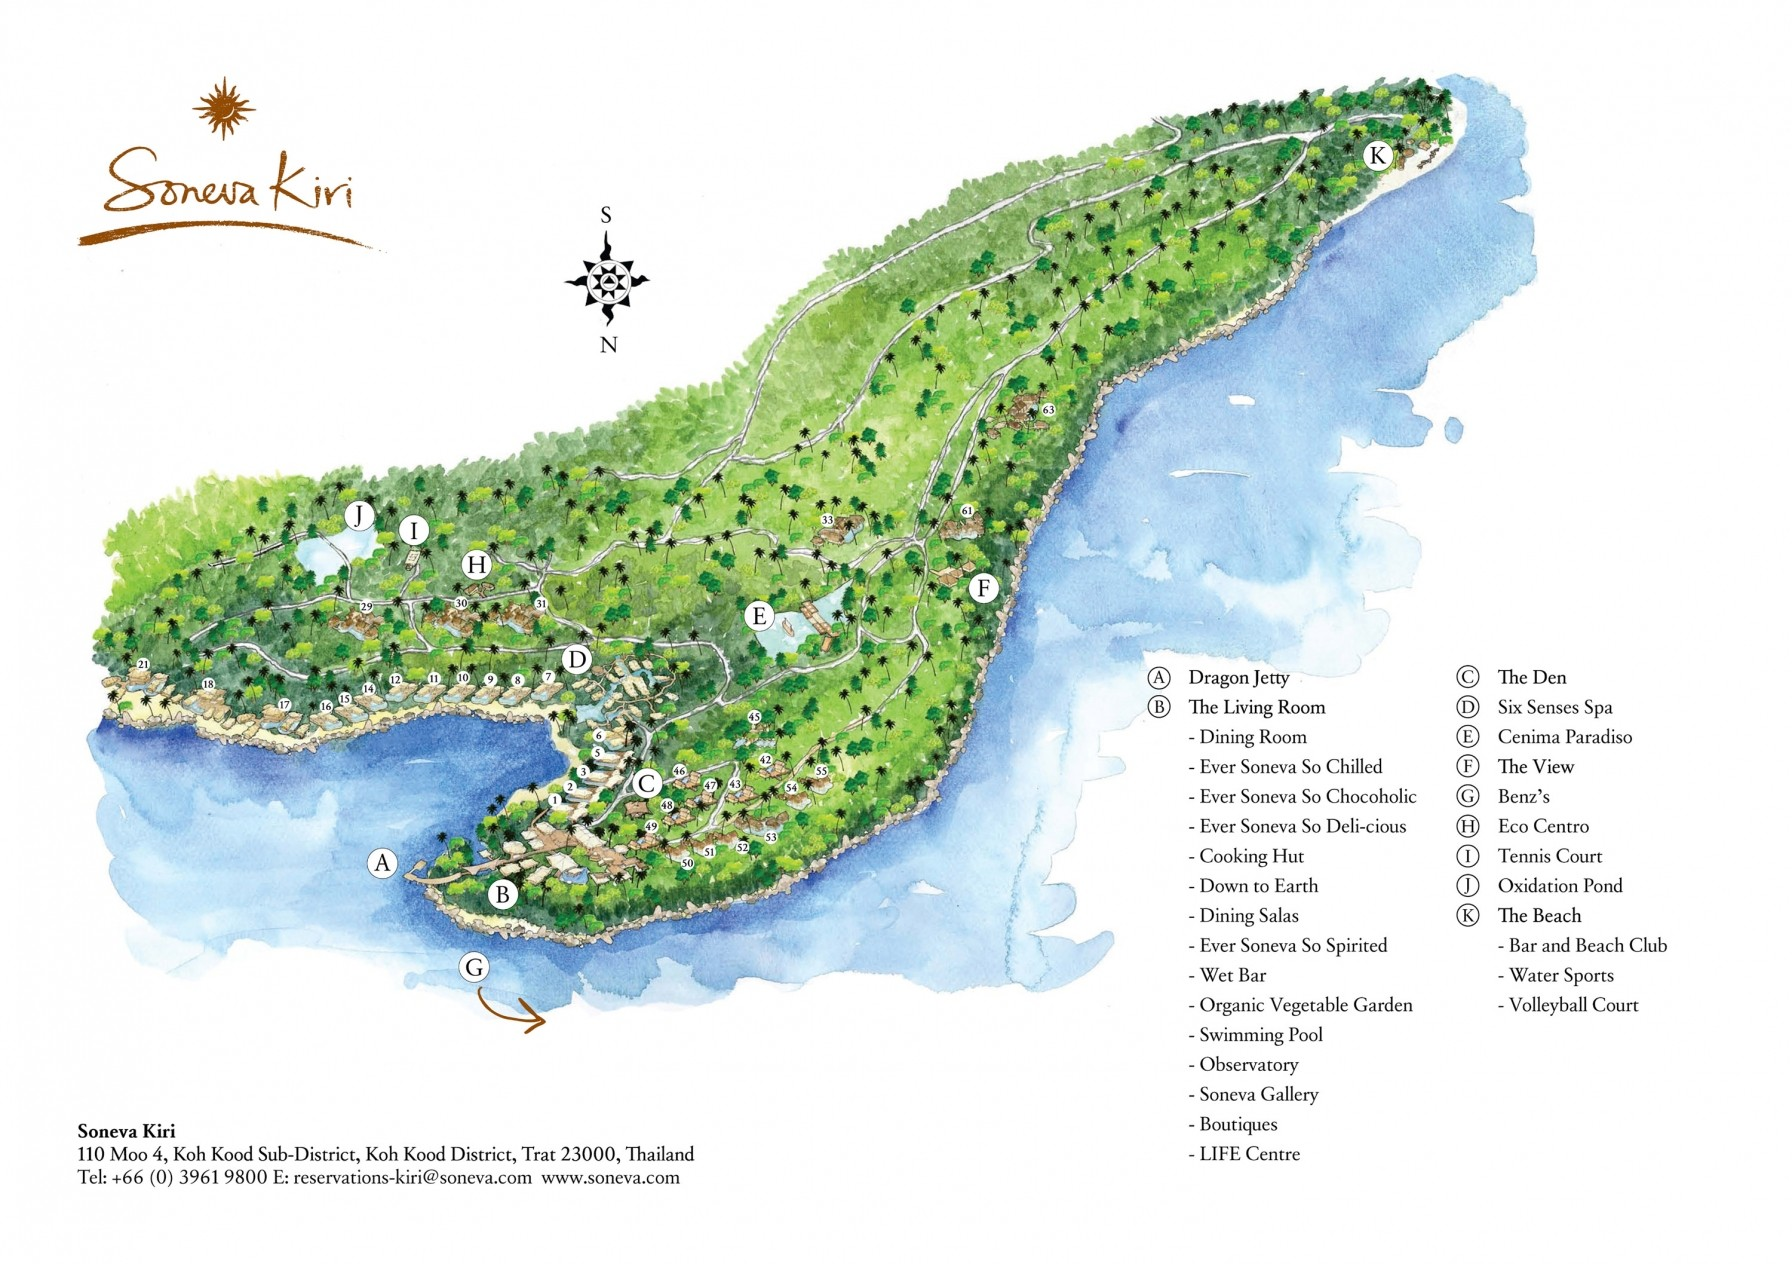 Soneva-Kiri-Resort-Map 新.jpg